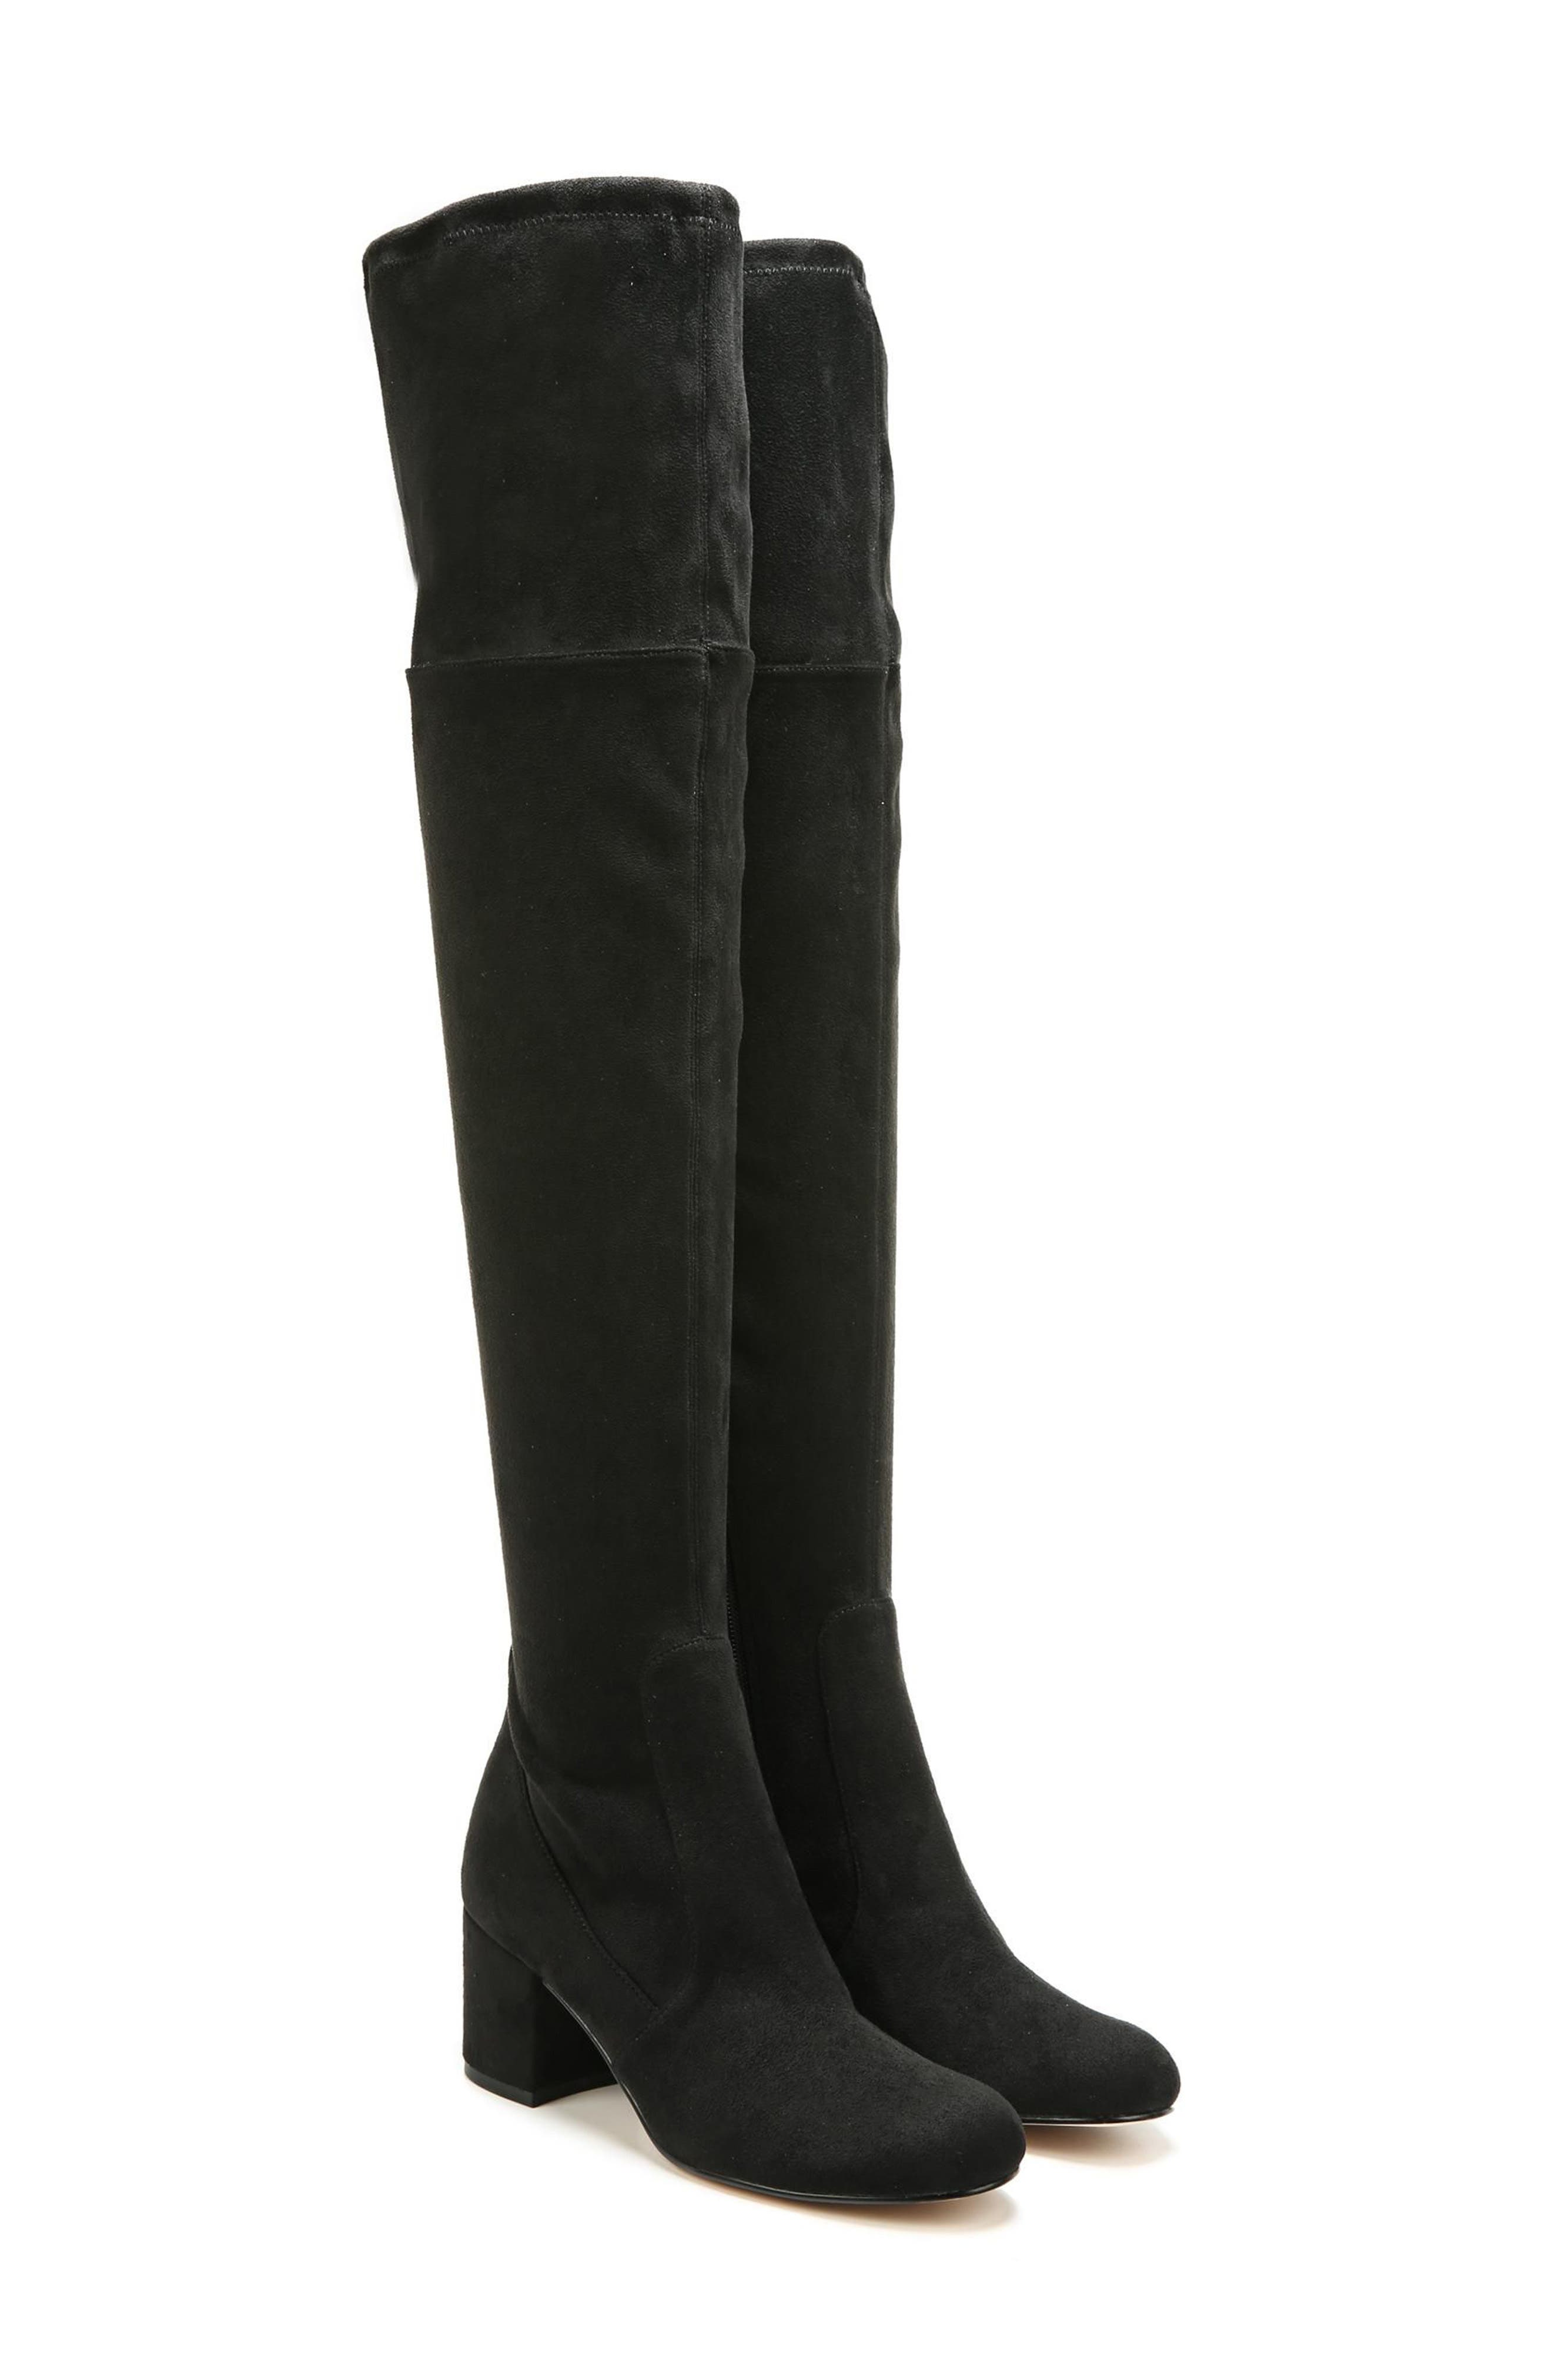 Varona Over the Knee Boot,                             Alternate thumbnail 8, color,                             001